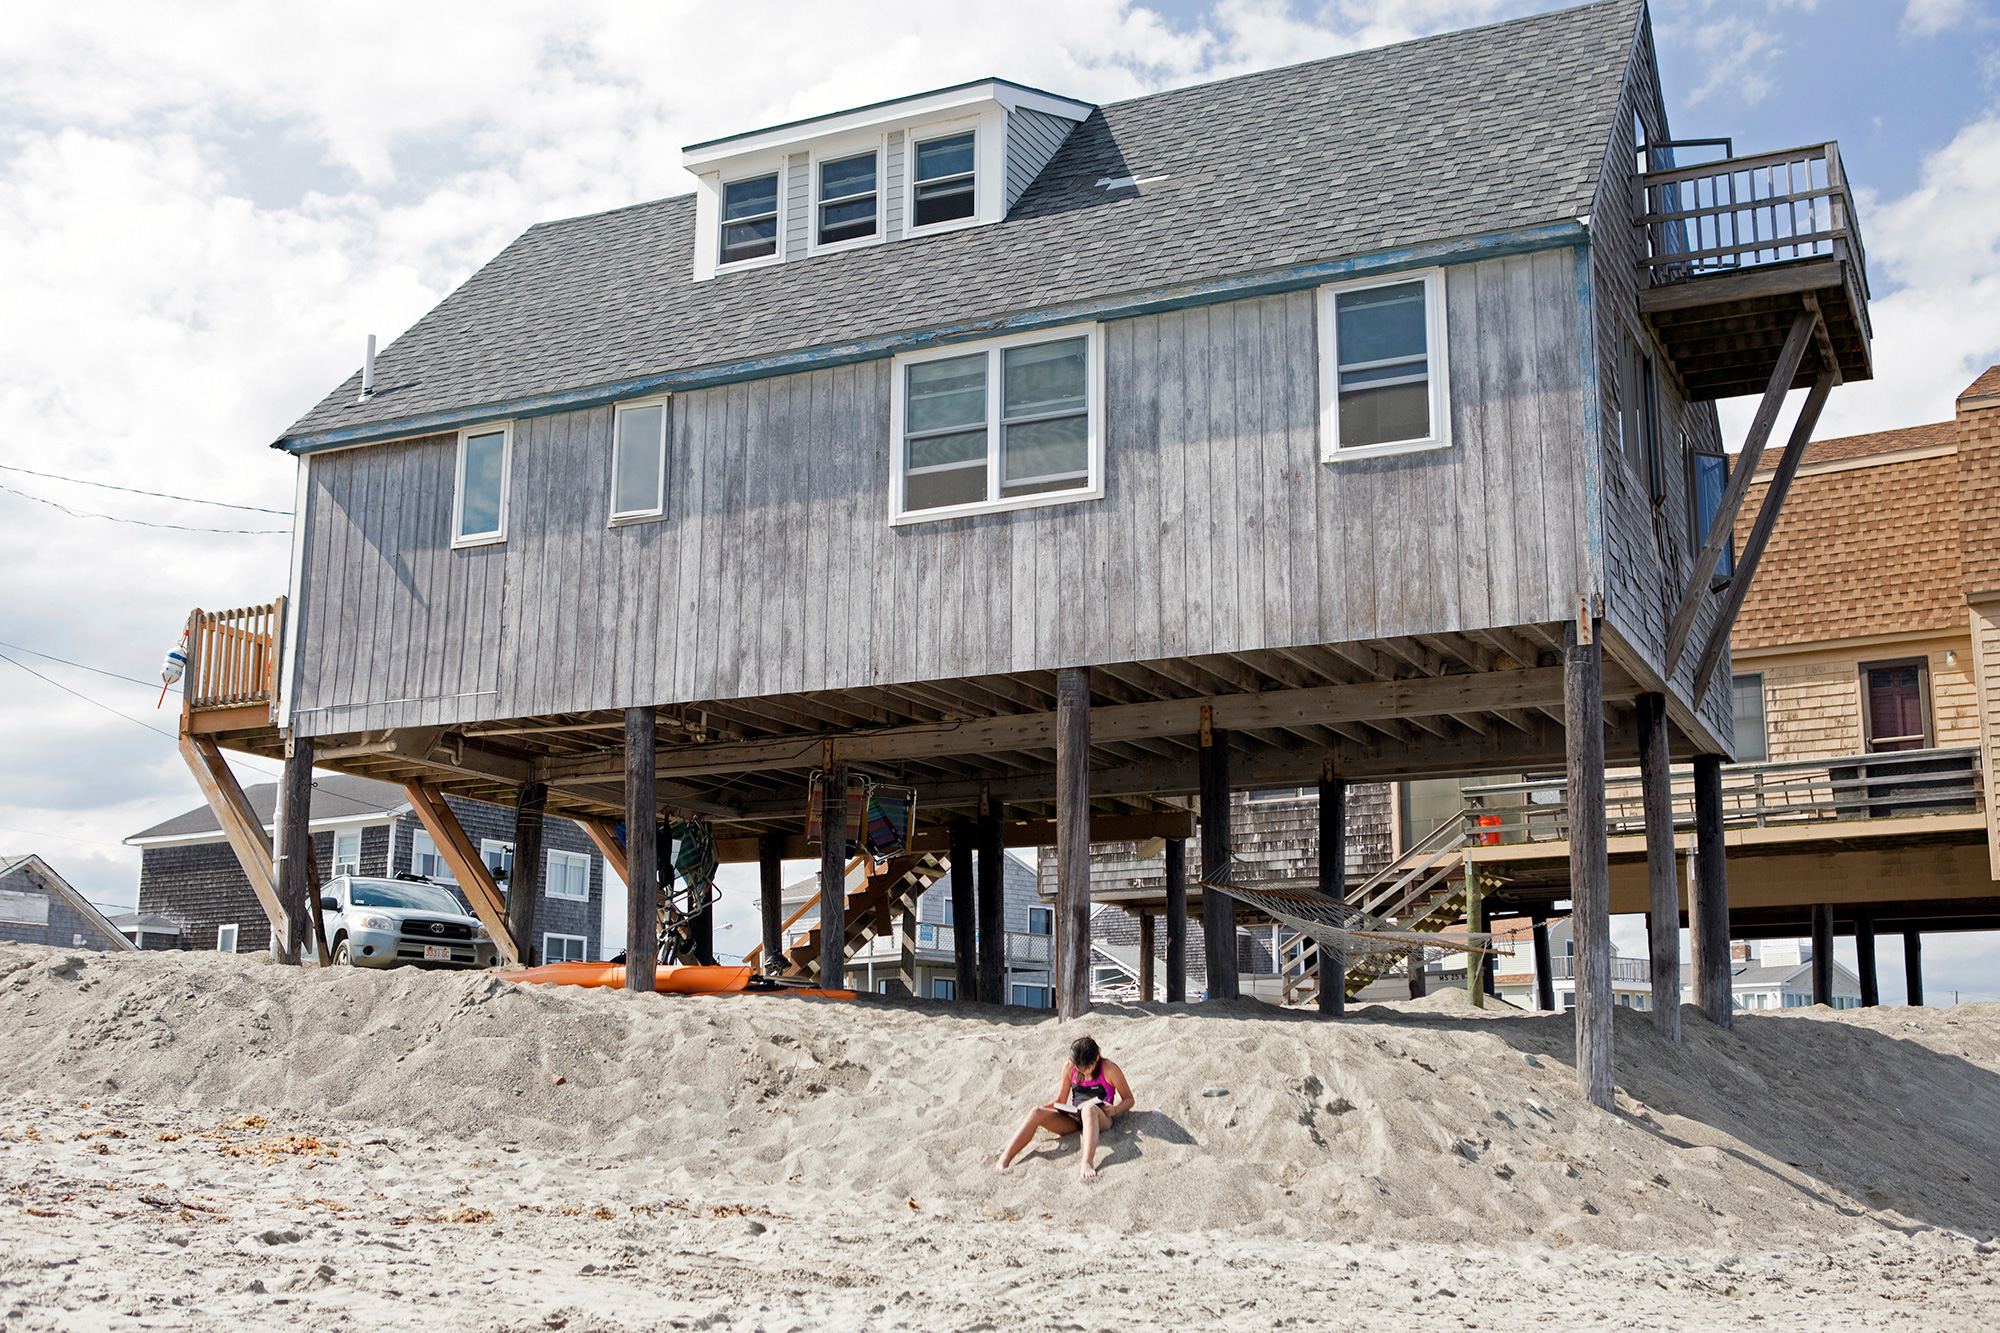 A girl reads her book by a raised cottage on Peggotty Beach in Scituate, on the South Shore of Massachusetts. Where there were once more than 50 cottages, the number has dwindled to a dozen as storms have eroded the beach and forced homeowners to vacate the area. Those houses that remain have been moved onto stilts. (Photo by Lauren Owens Lambert/GroundTruth)